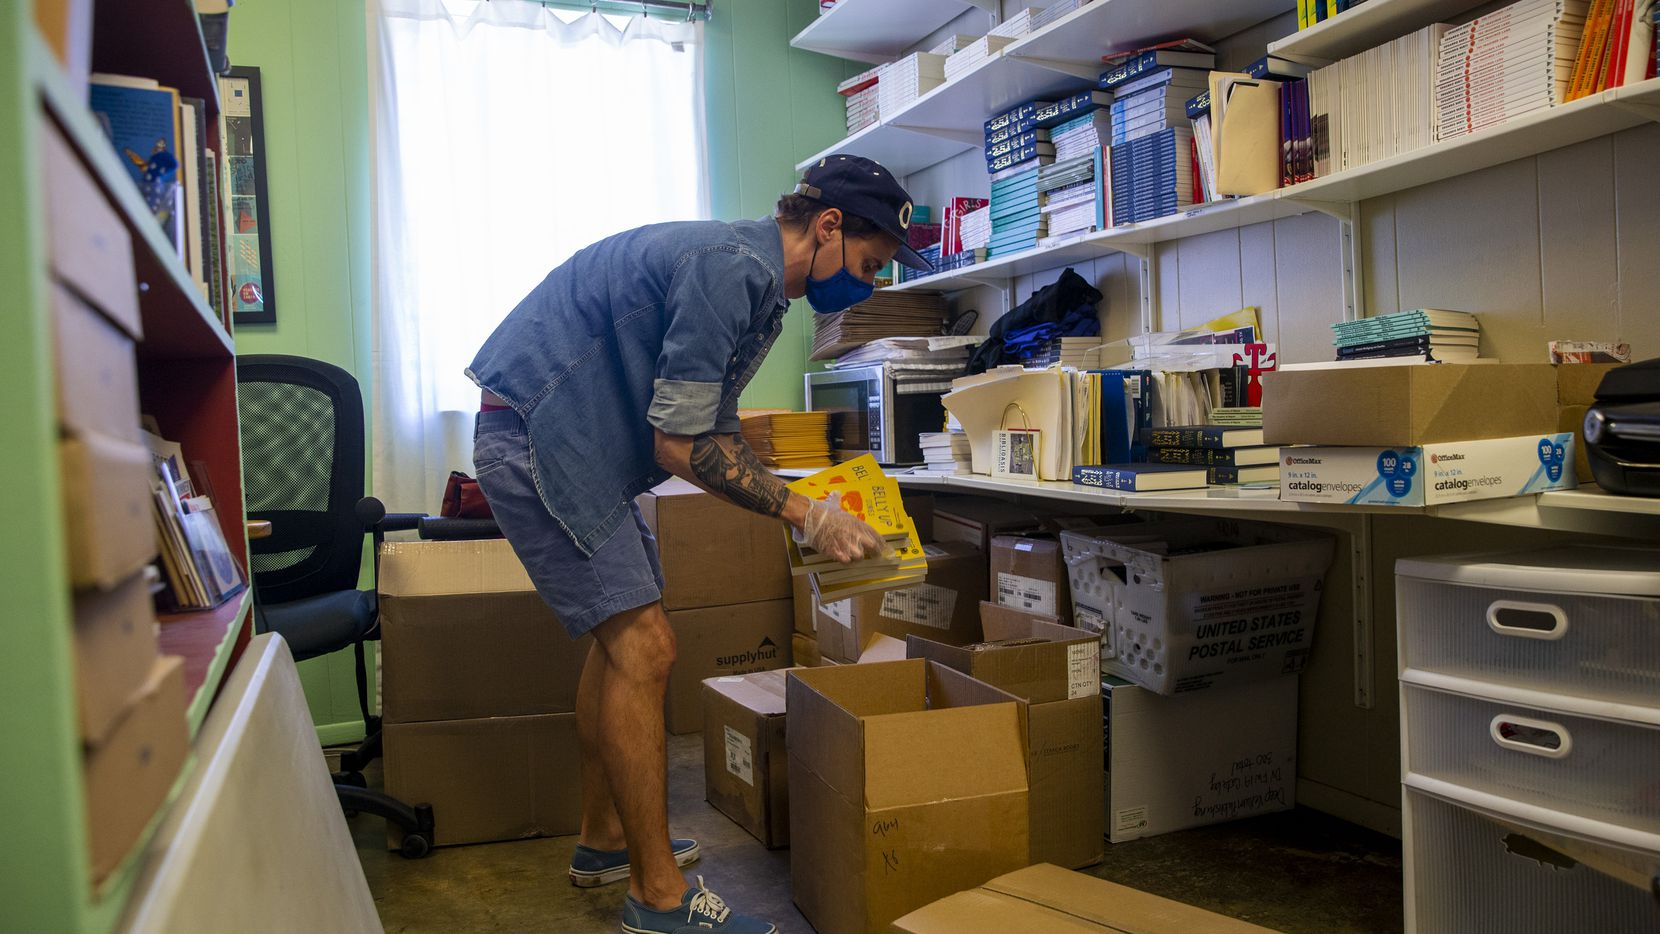 Will Evans, executive director of Deep Vellum Publishing, packages online orders for at Deep Vellum Books in Deep Ellum in Dallas on Wednesday, April 29, 2020.